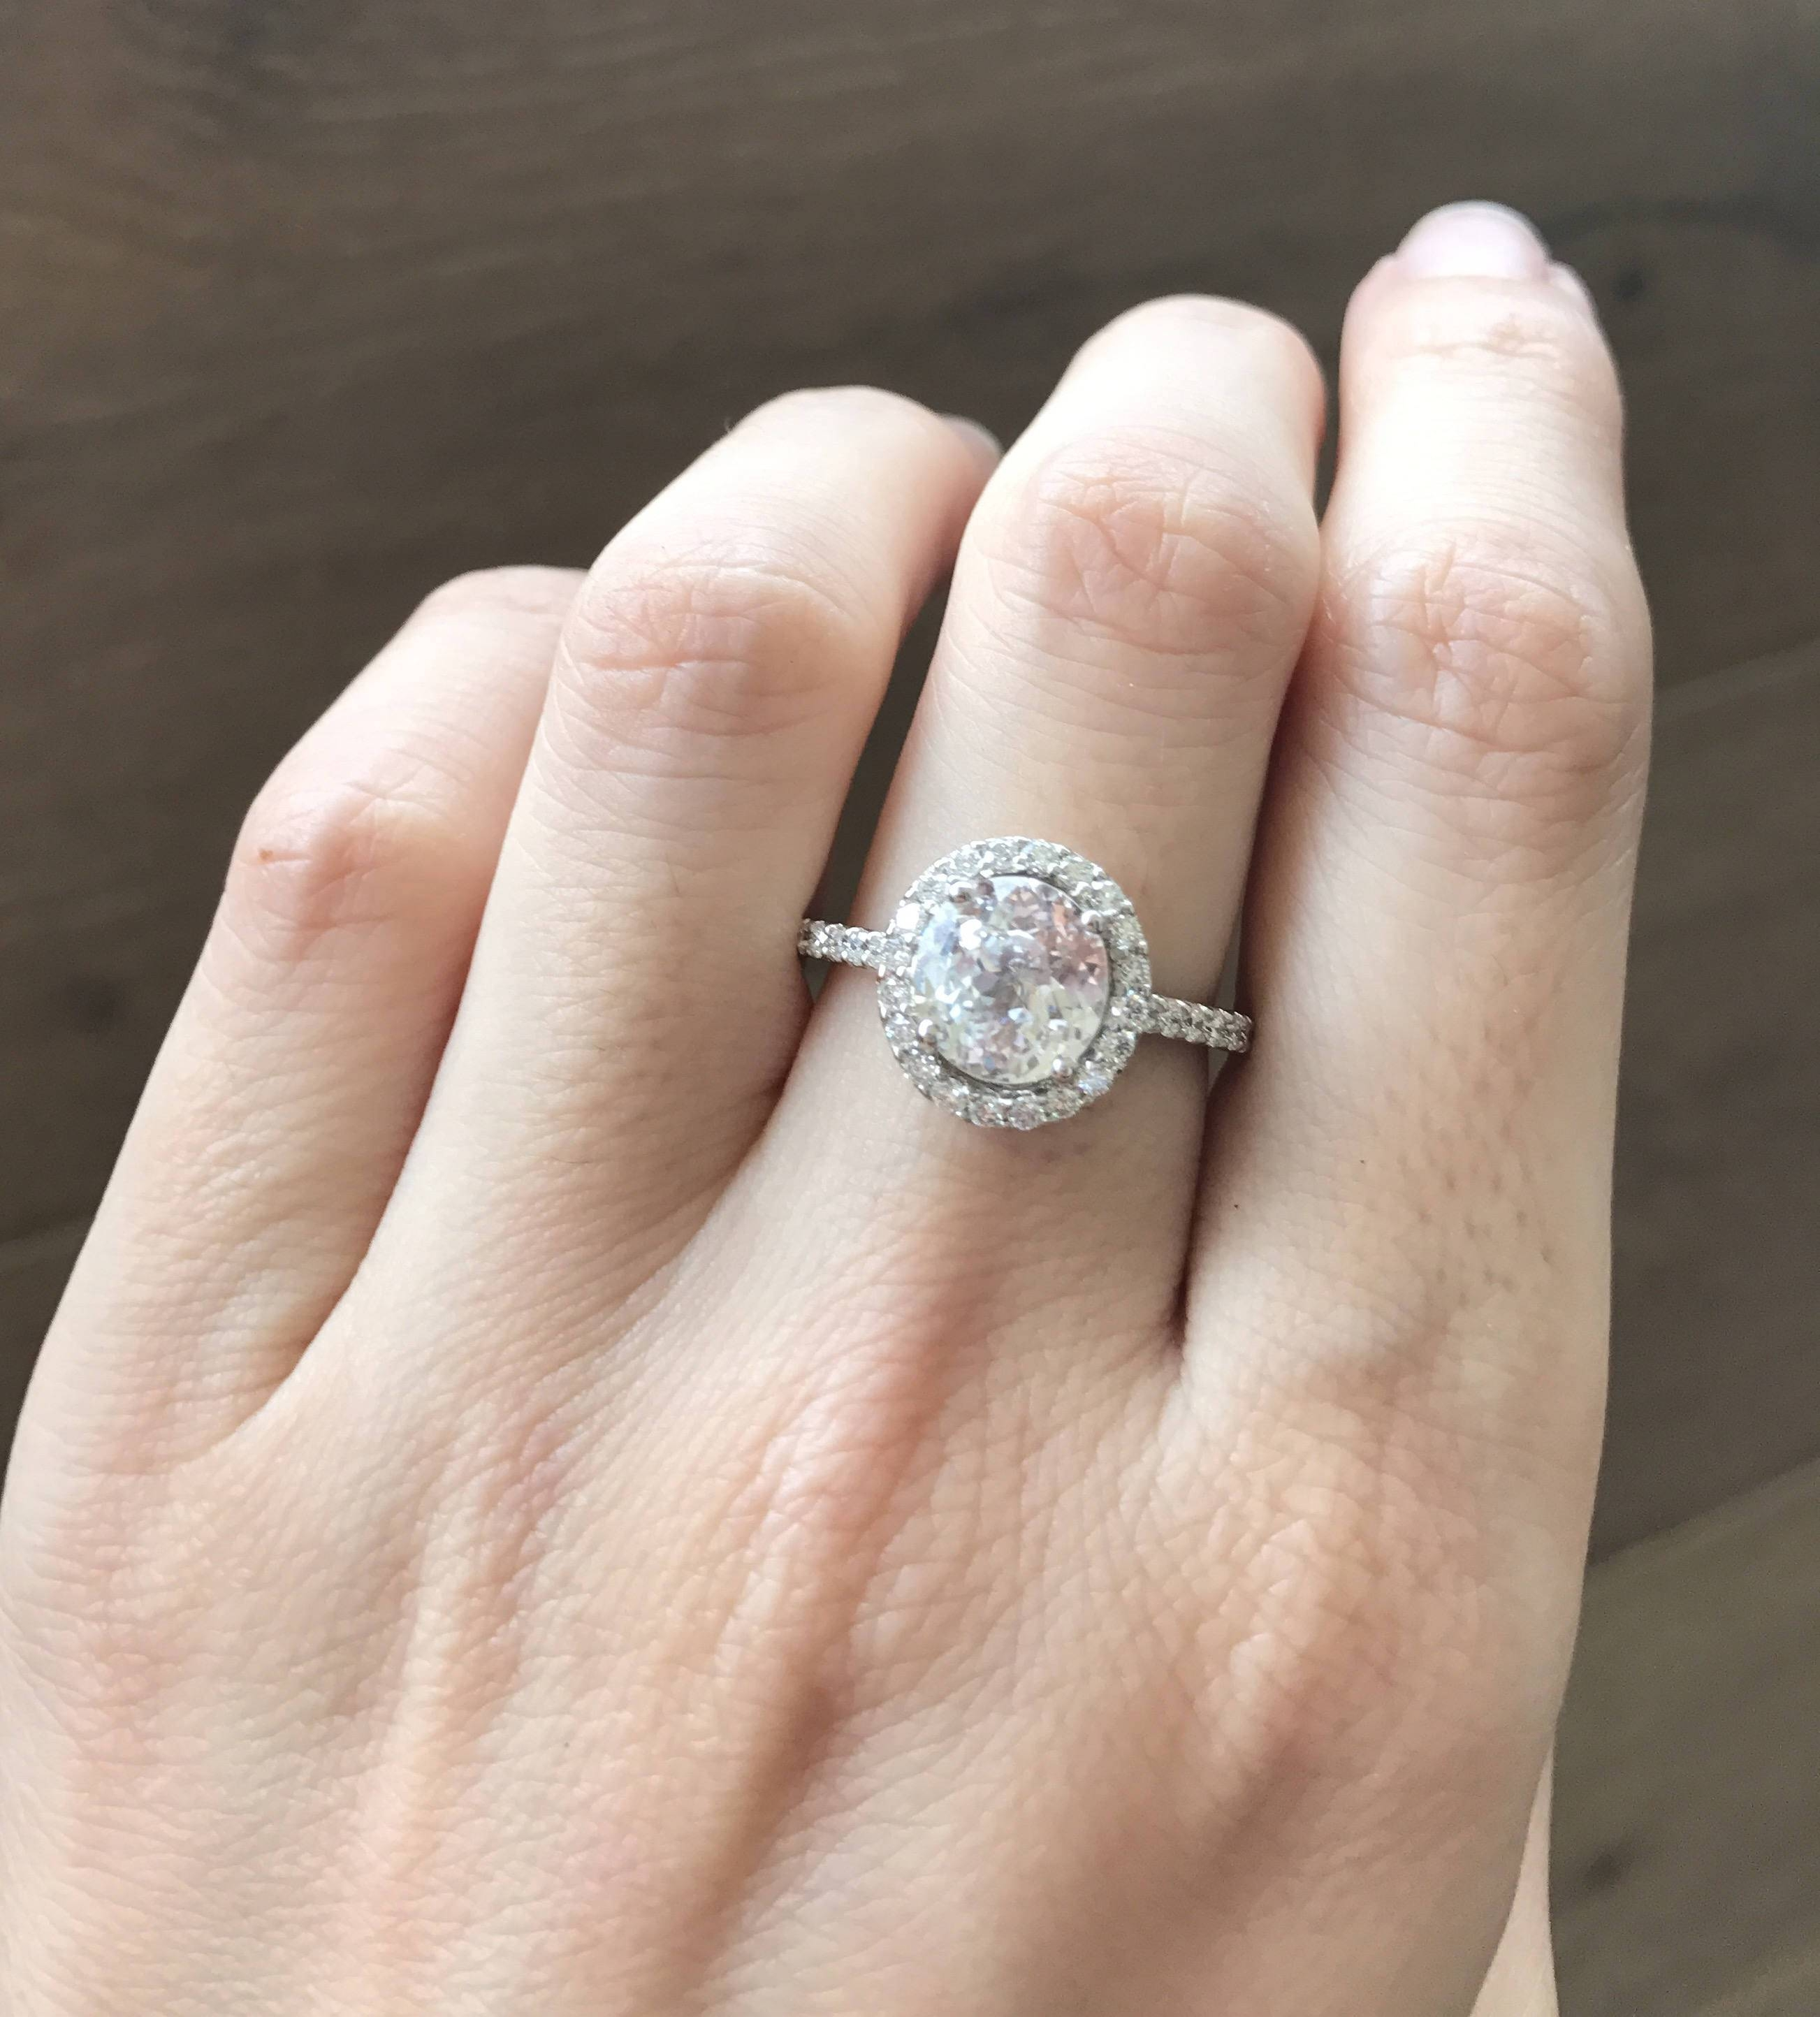 White Sapphire Engagement Ring  Halo Sapphire Promise Ring  2 For Most Popular White Sapphire Anniversary Rings (Gallery 22 of 25)